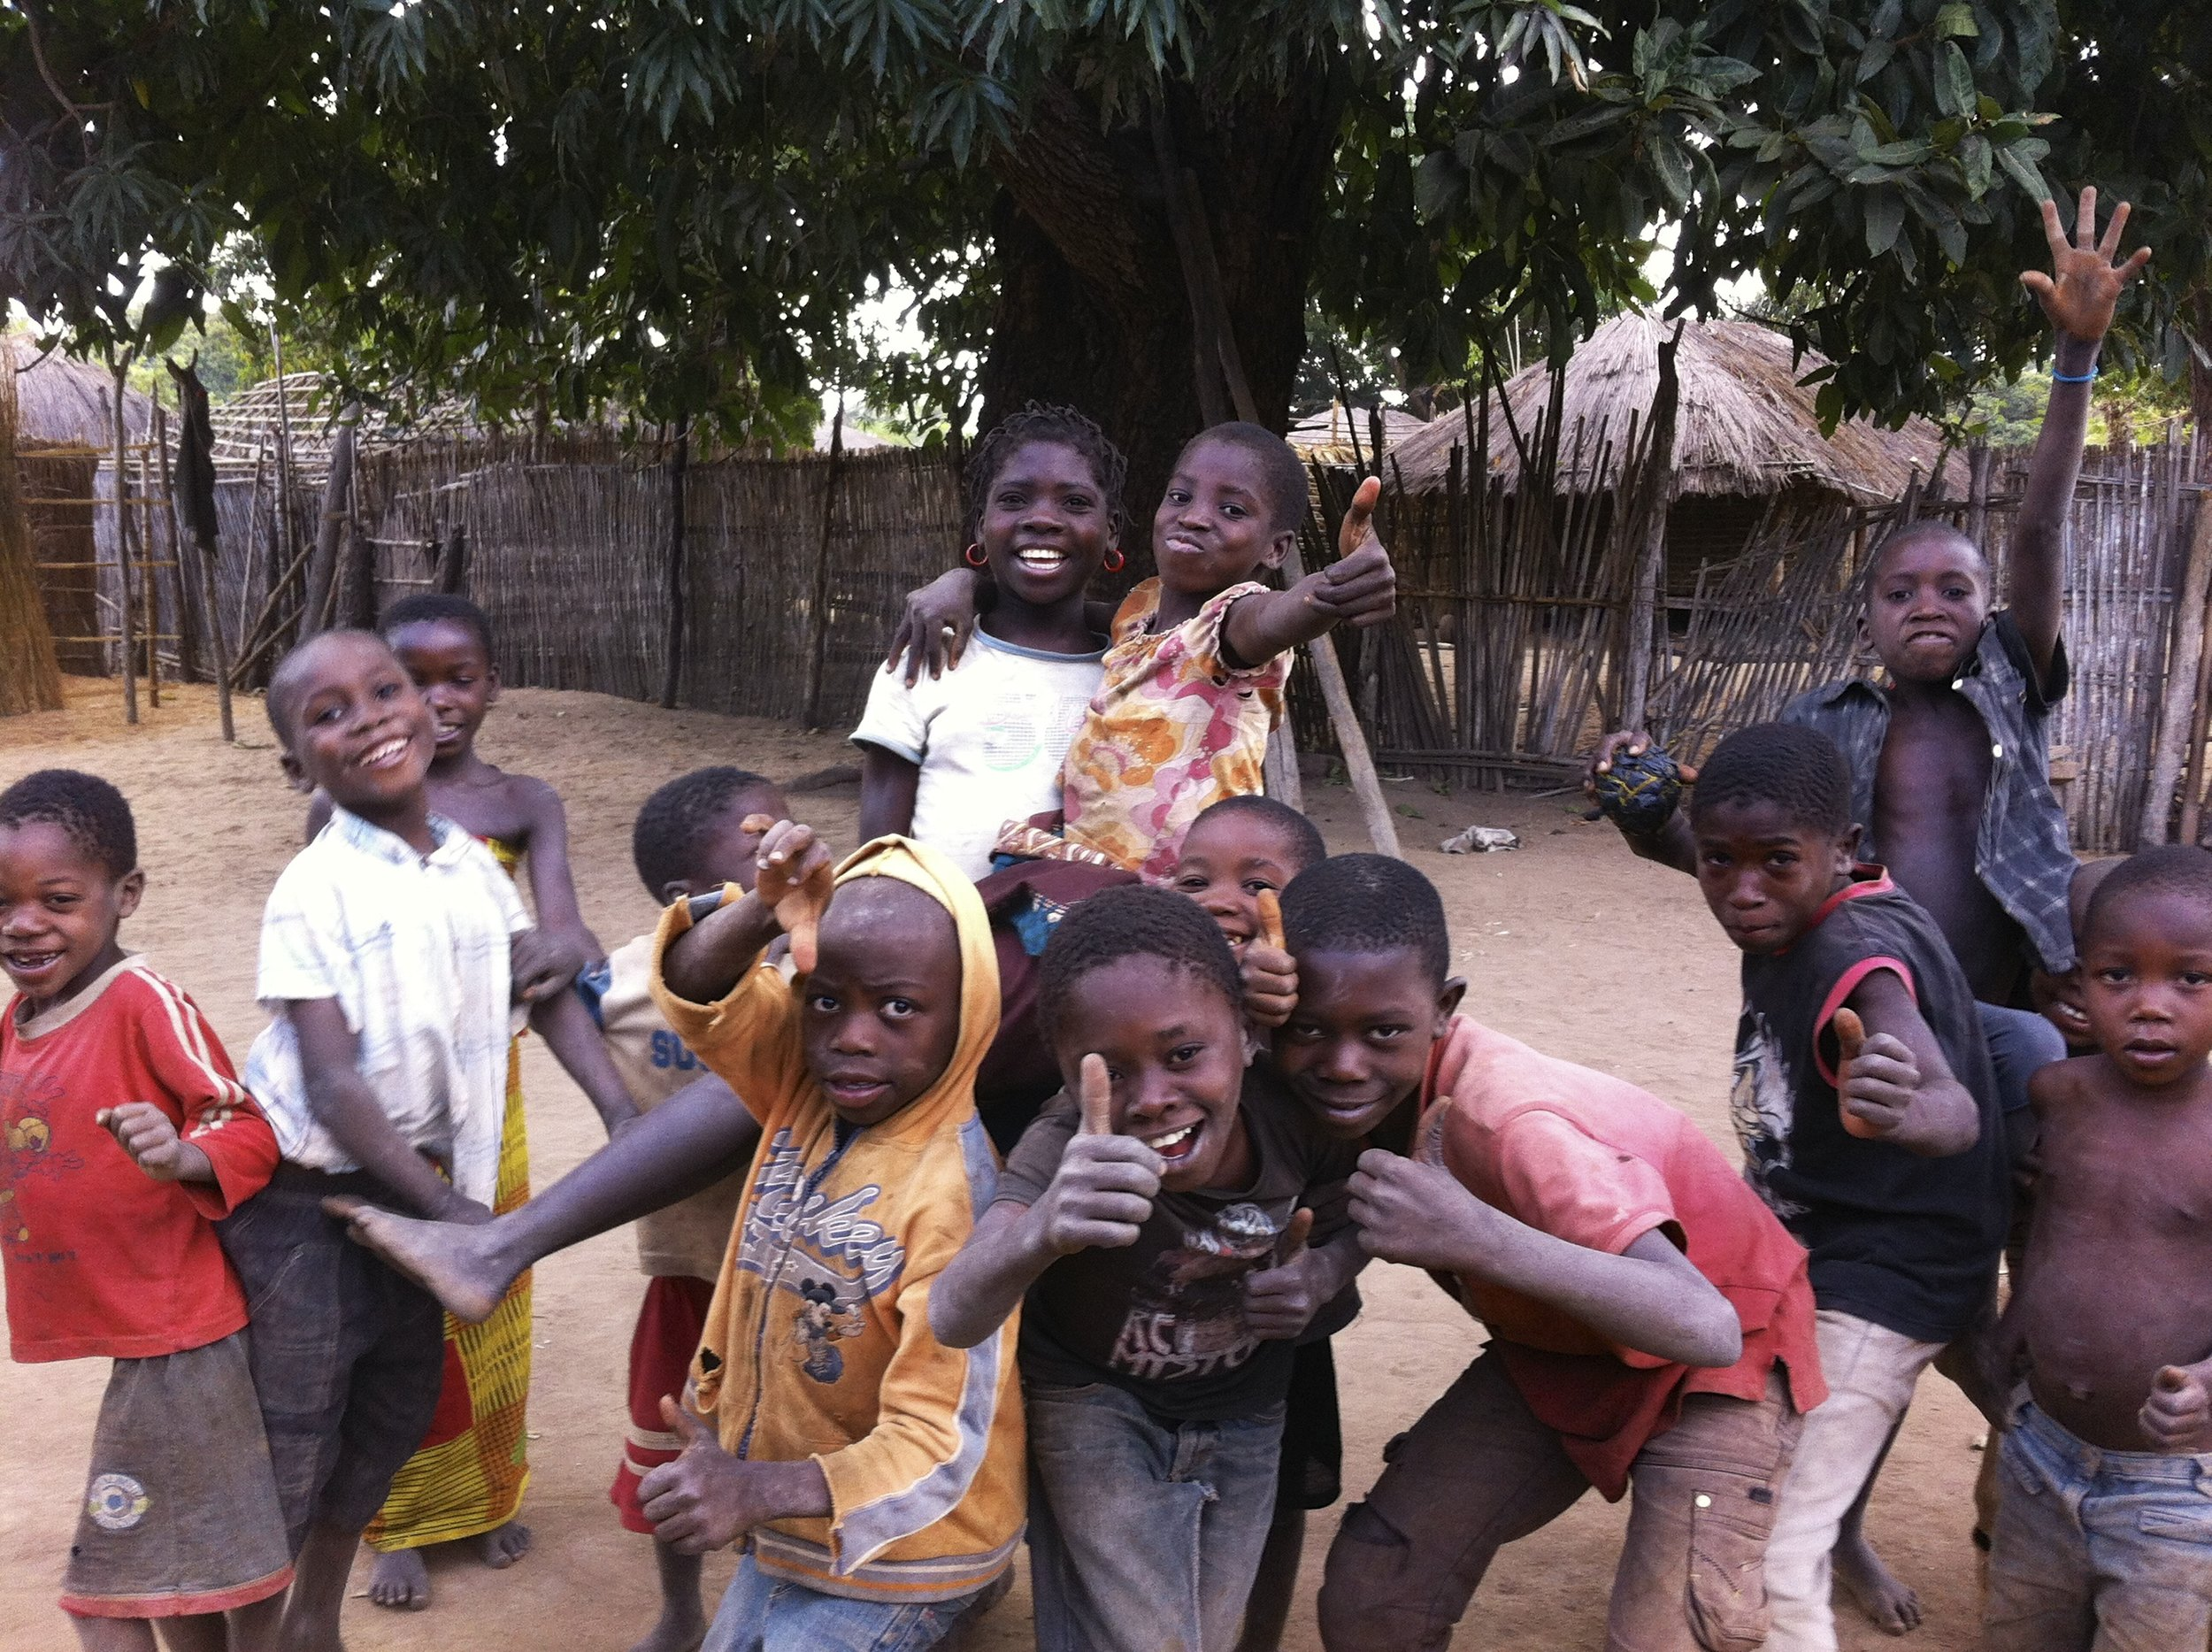 Some kids in Nkwonoma